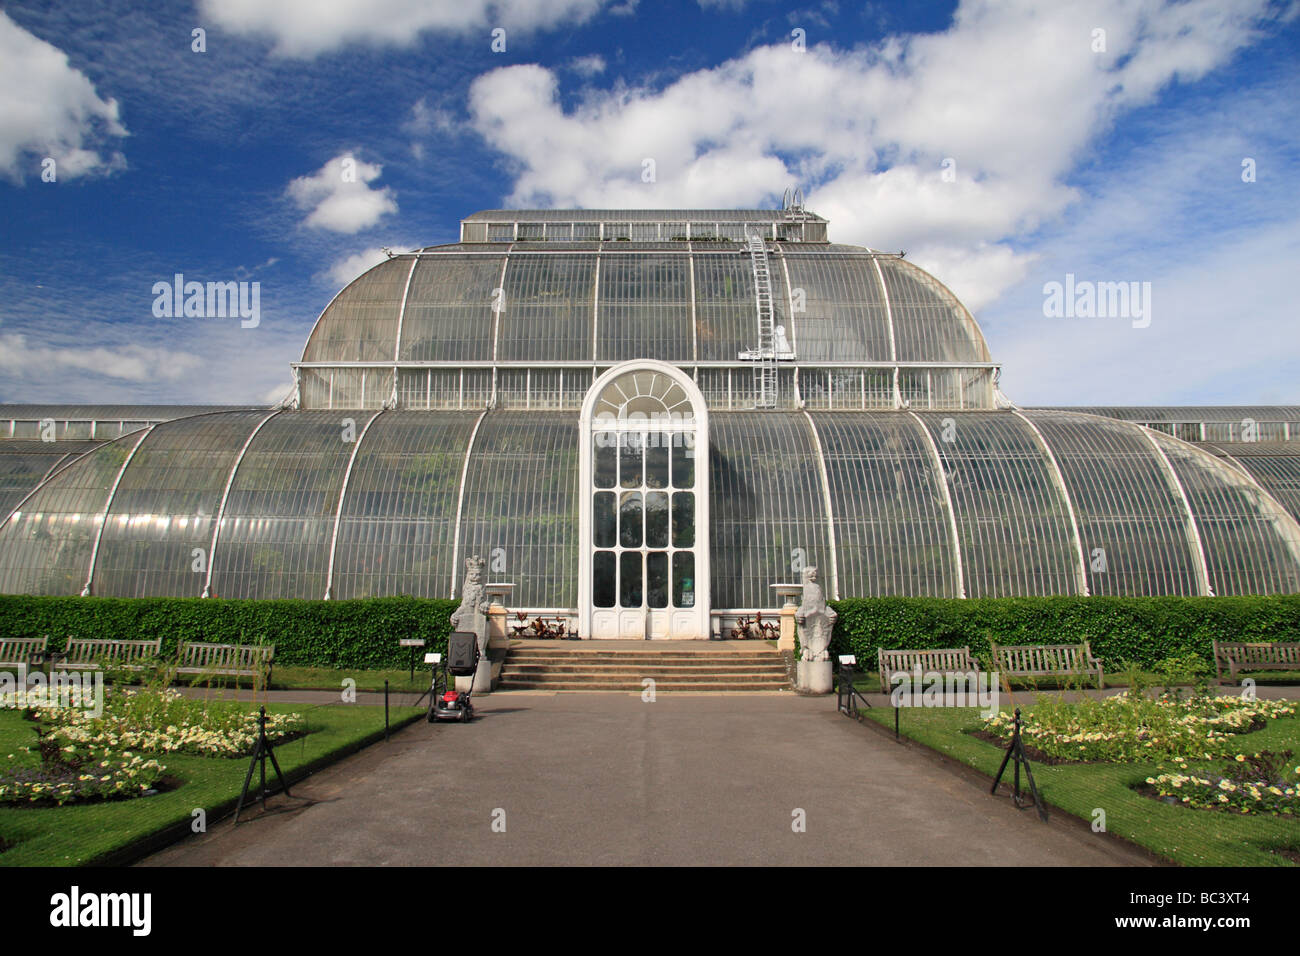 The Main Entrance To The Palm House, The Royal Botanic Gardens, Kew,  Surrey, England